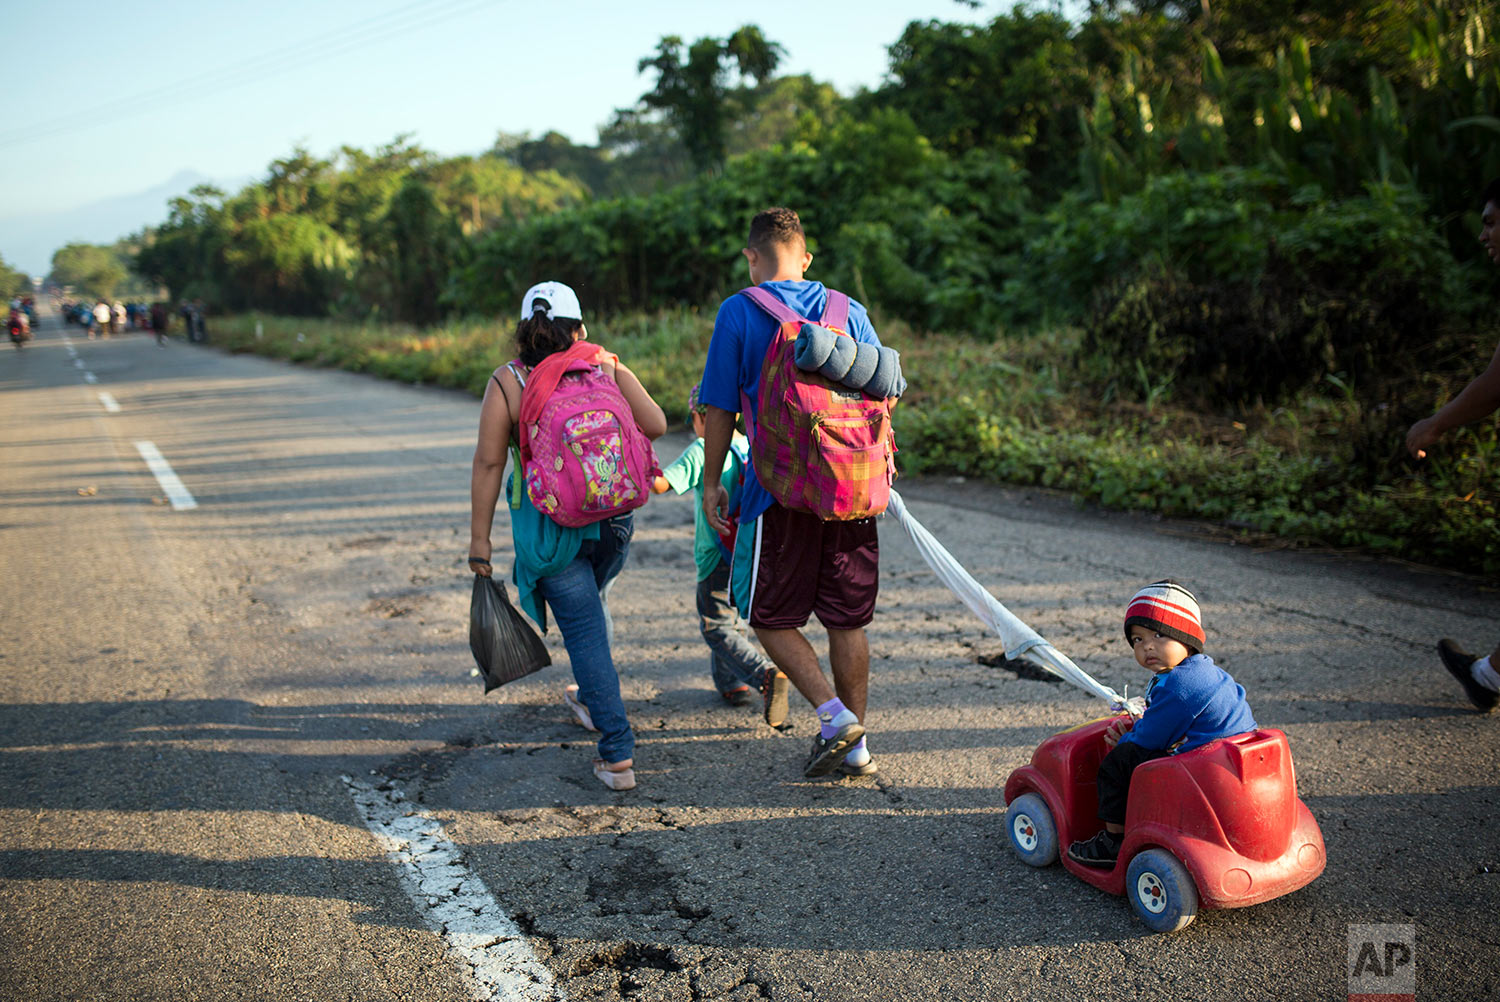 Central American migrants traveling with a caravan to the U.S. make their way to Mapastepec, Mexico, Wednesday, Oct. 24, 2018. (AP Photo/Rodrigo Abd)